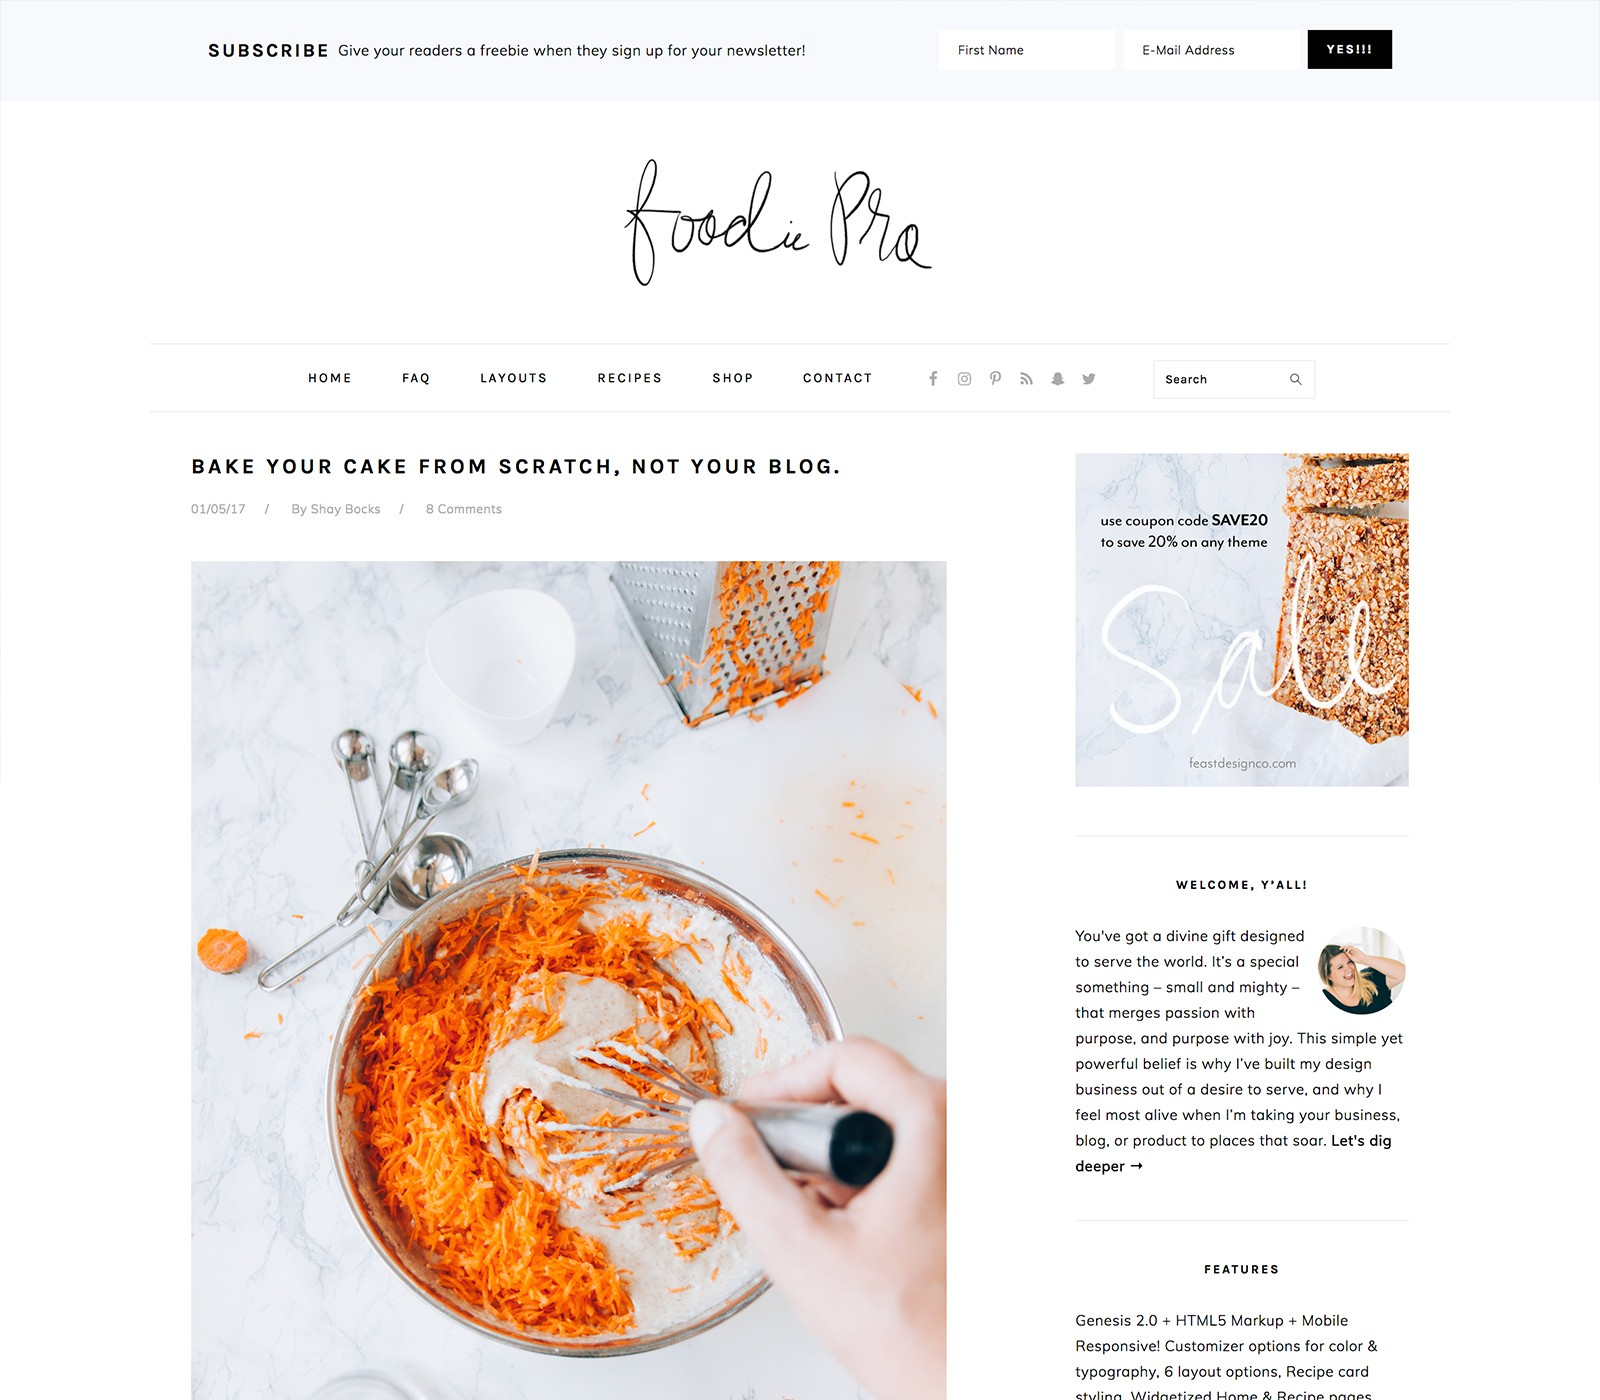 Foodie Pro Top 10 Best Genesis Child Themes For WordPress Blogs